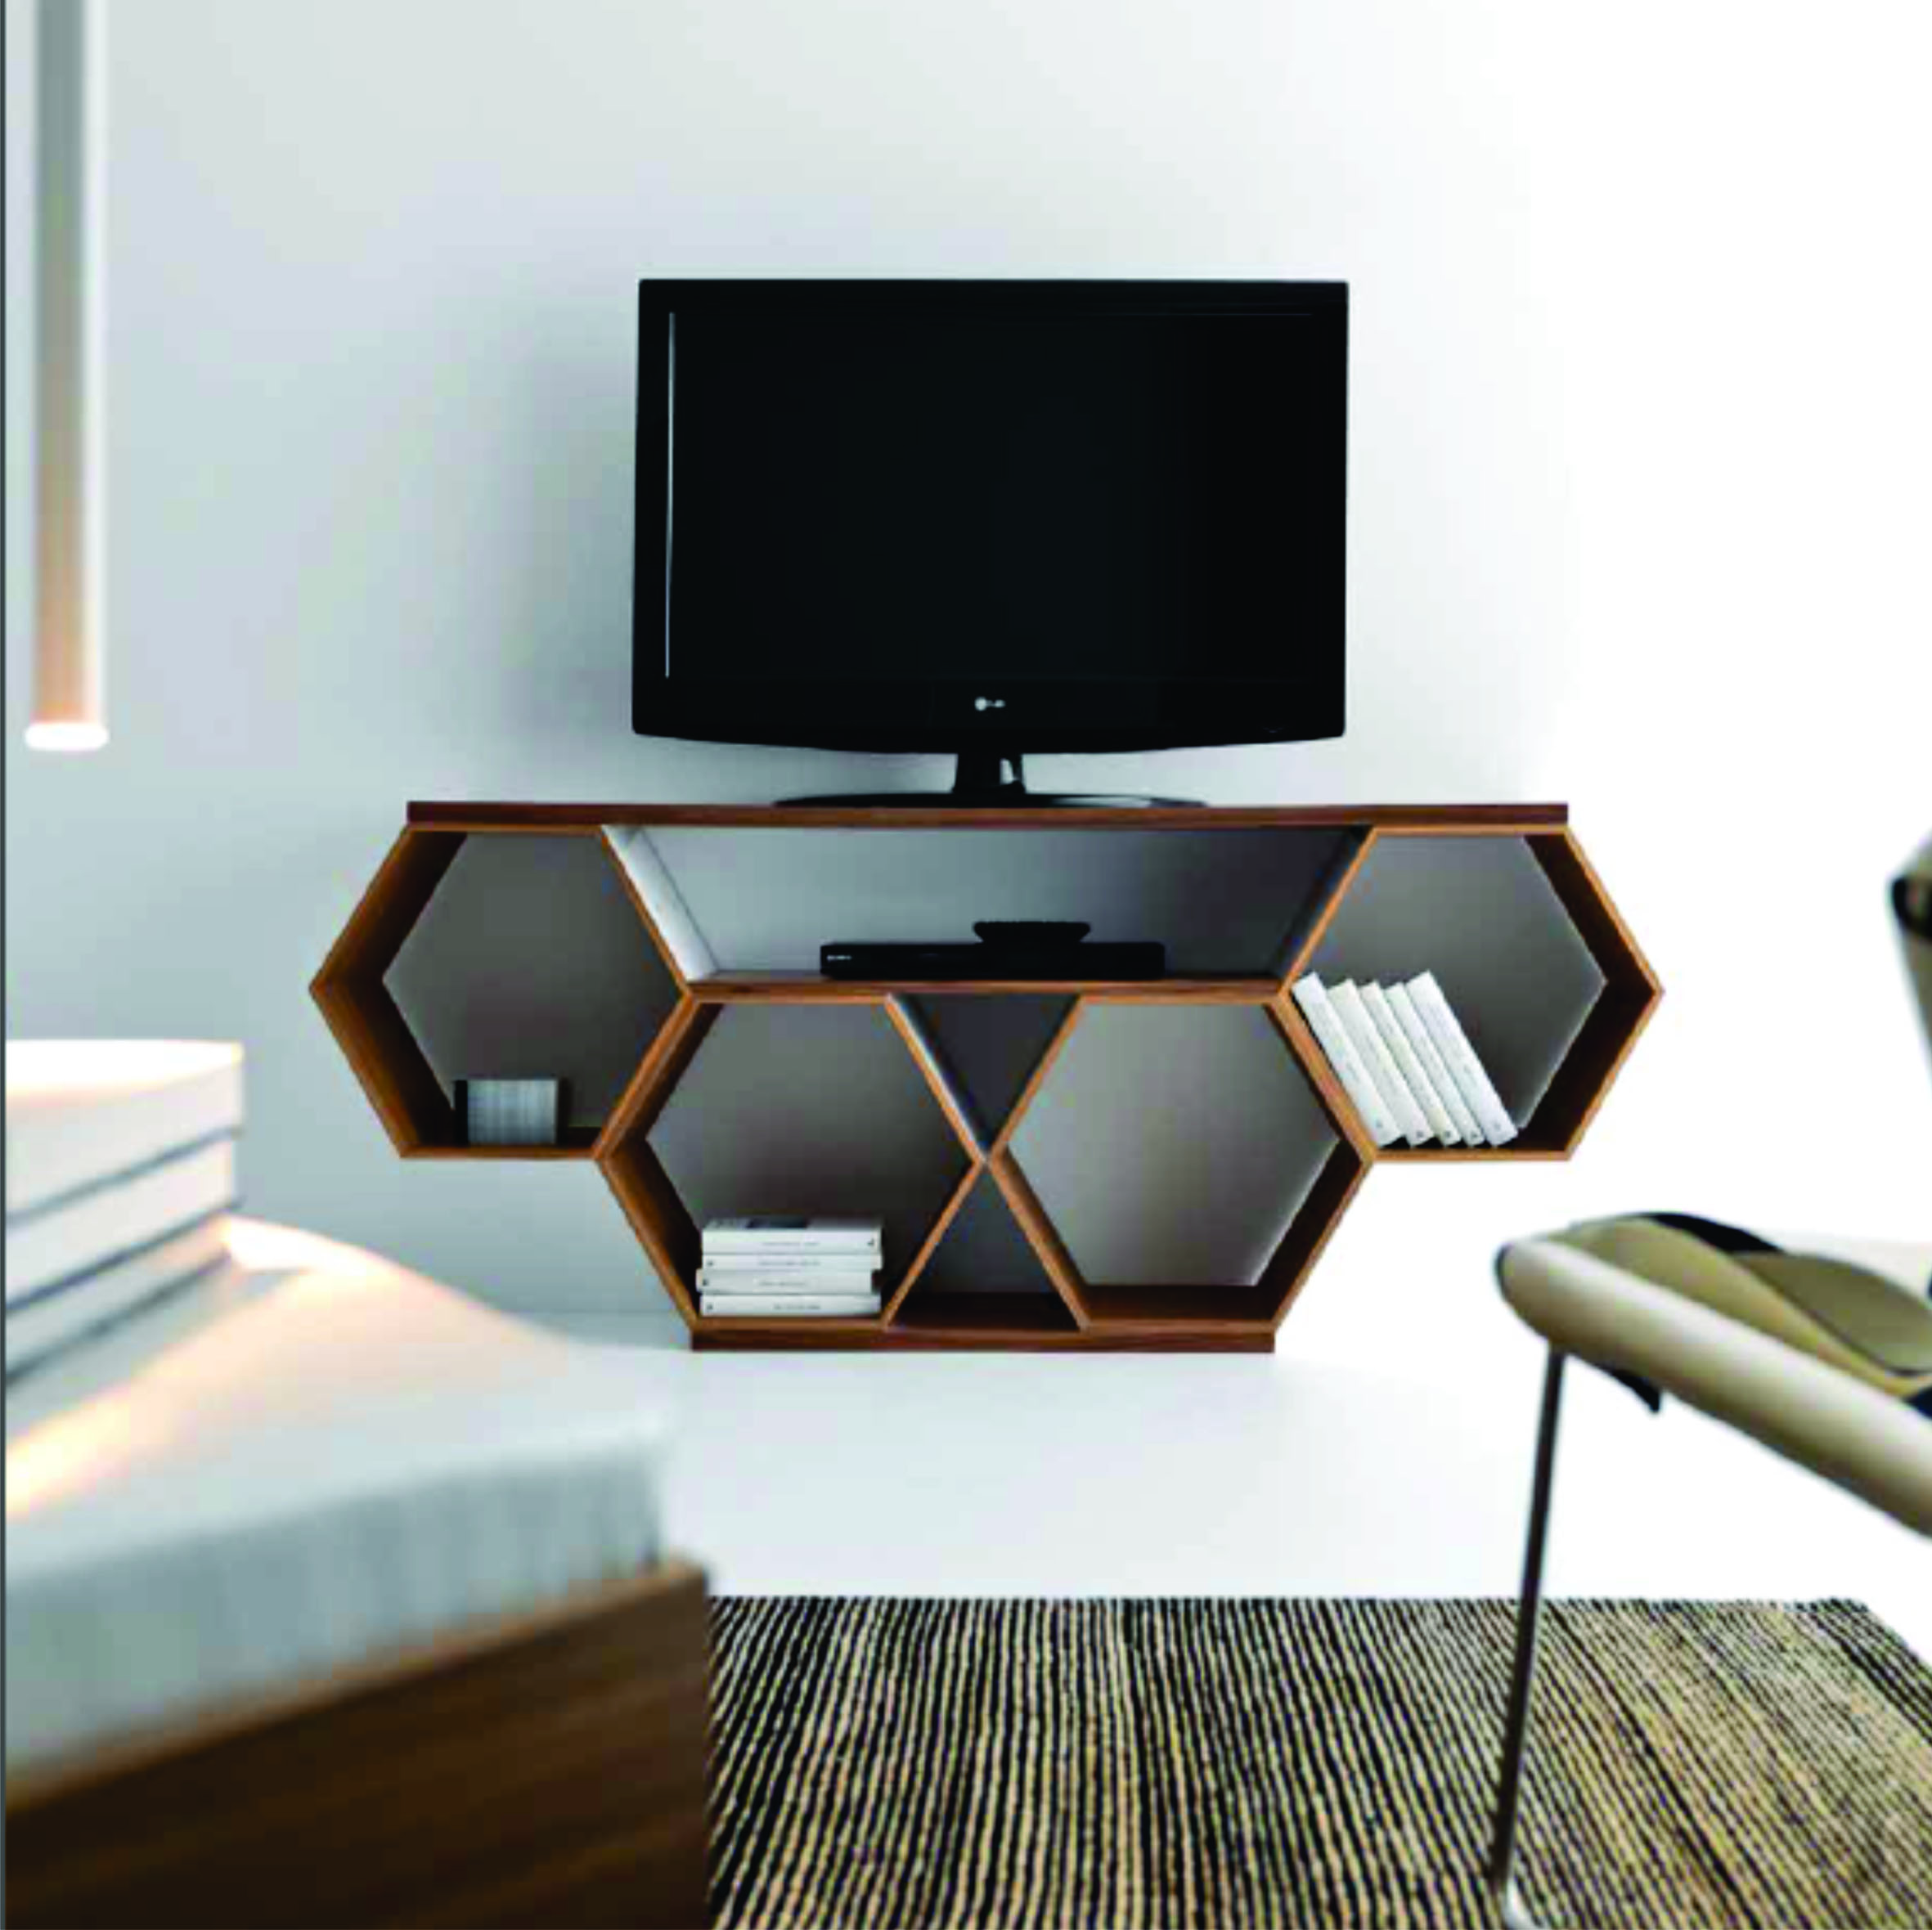 Hexagonal Wall Shelf - hard-working insects they spread from hexagons whole